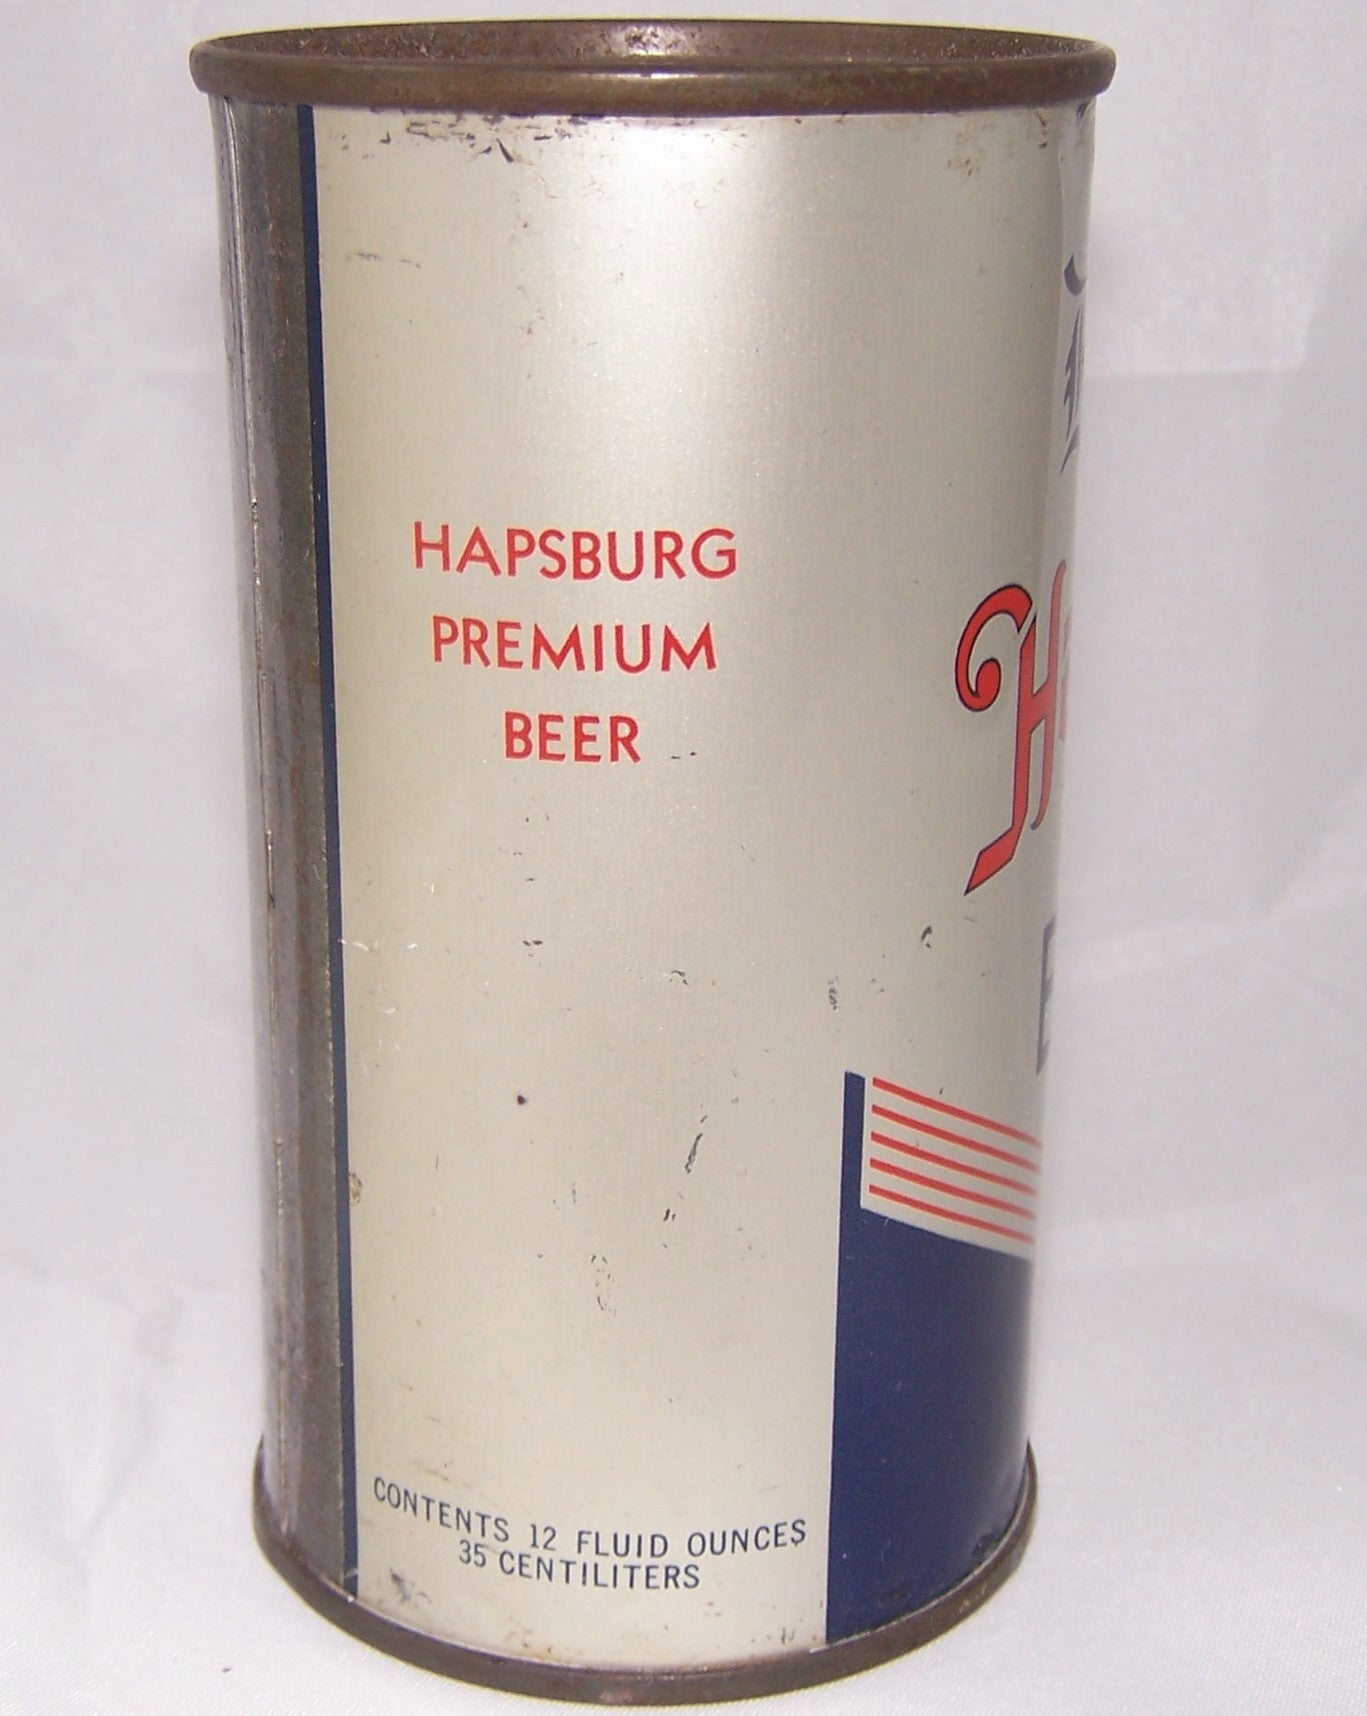 Best's Hapsburg Brand Beer, USBC 80-21, Grade 1- Sold on 02/06/17